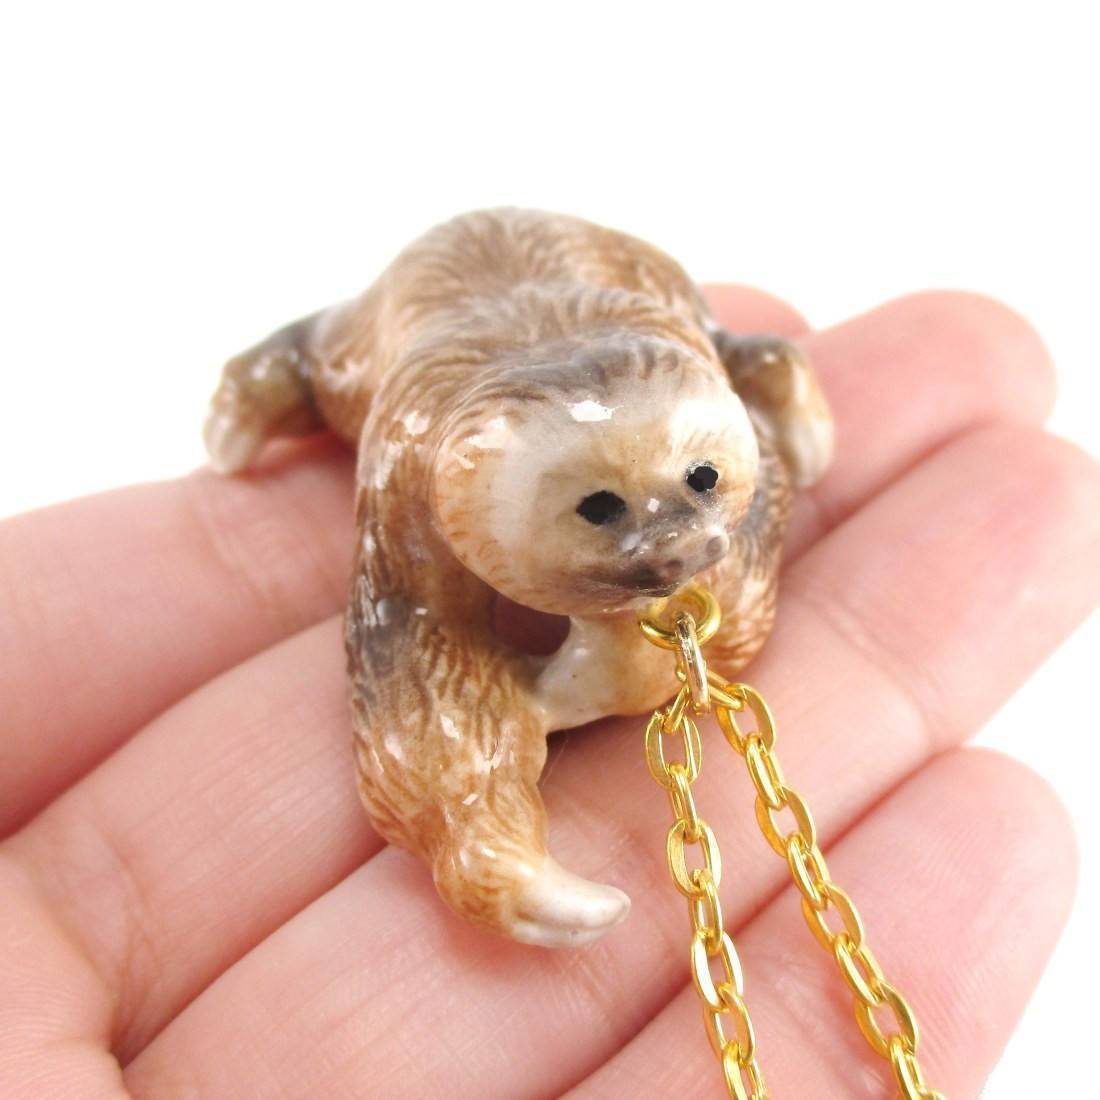 jewellery organza bag quirky fun dsc massive products in gold hanging and plated cute smiling sloth necklace pendant